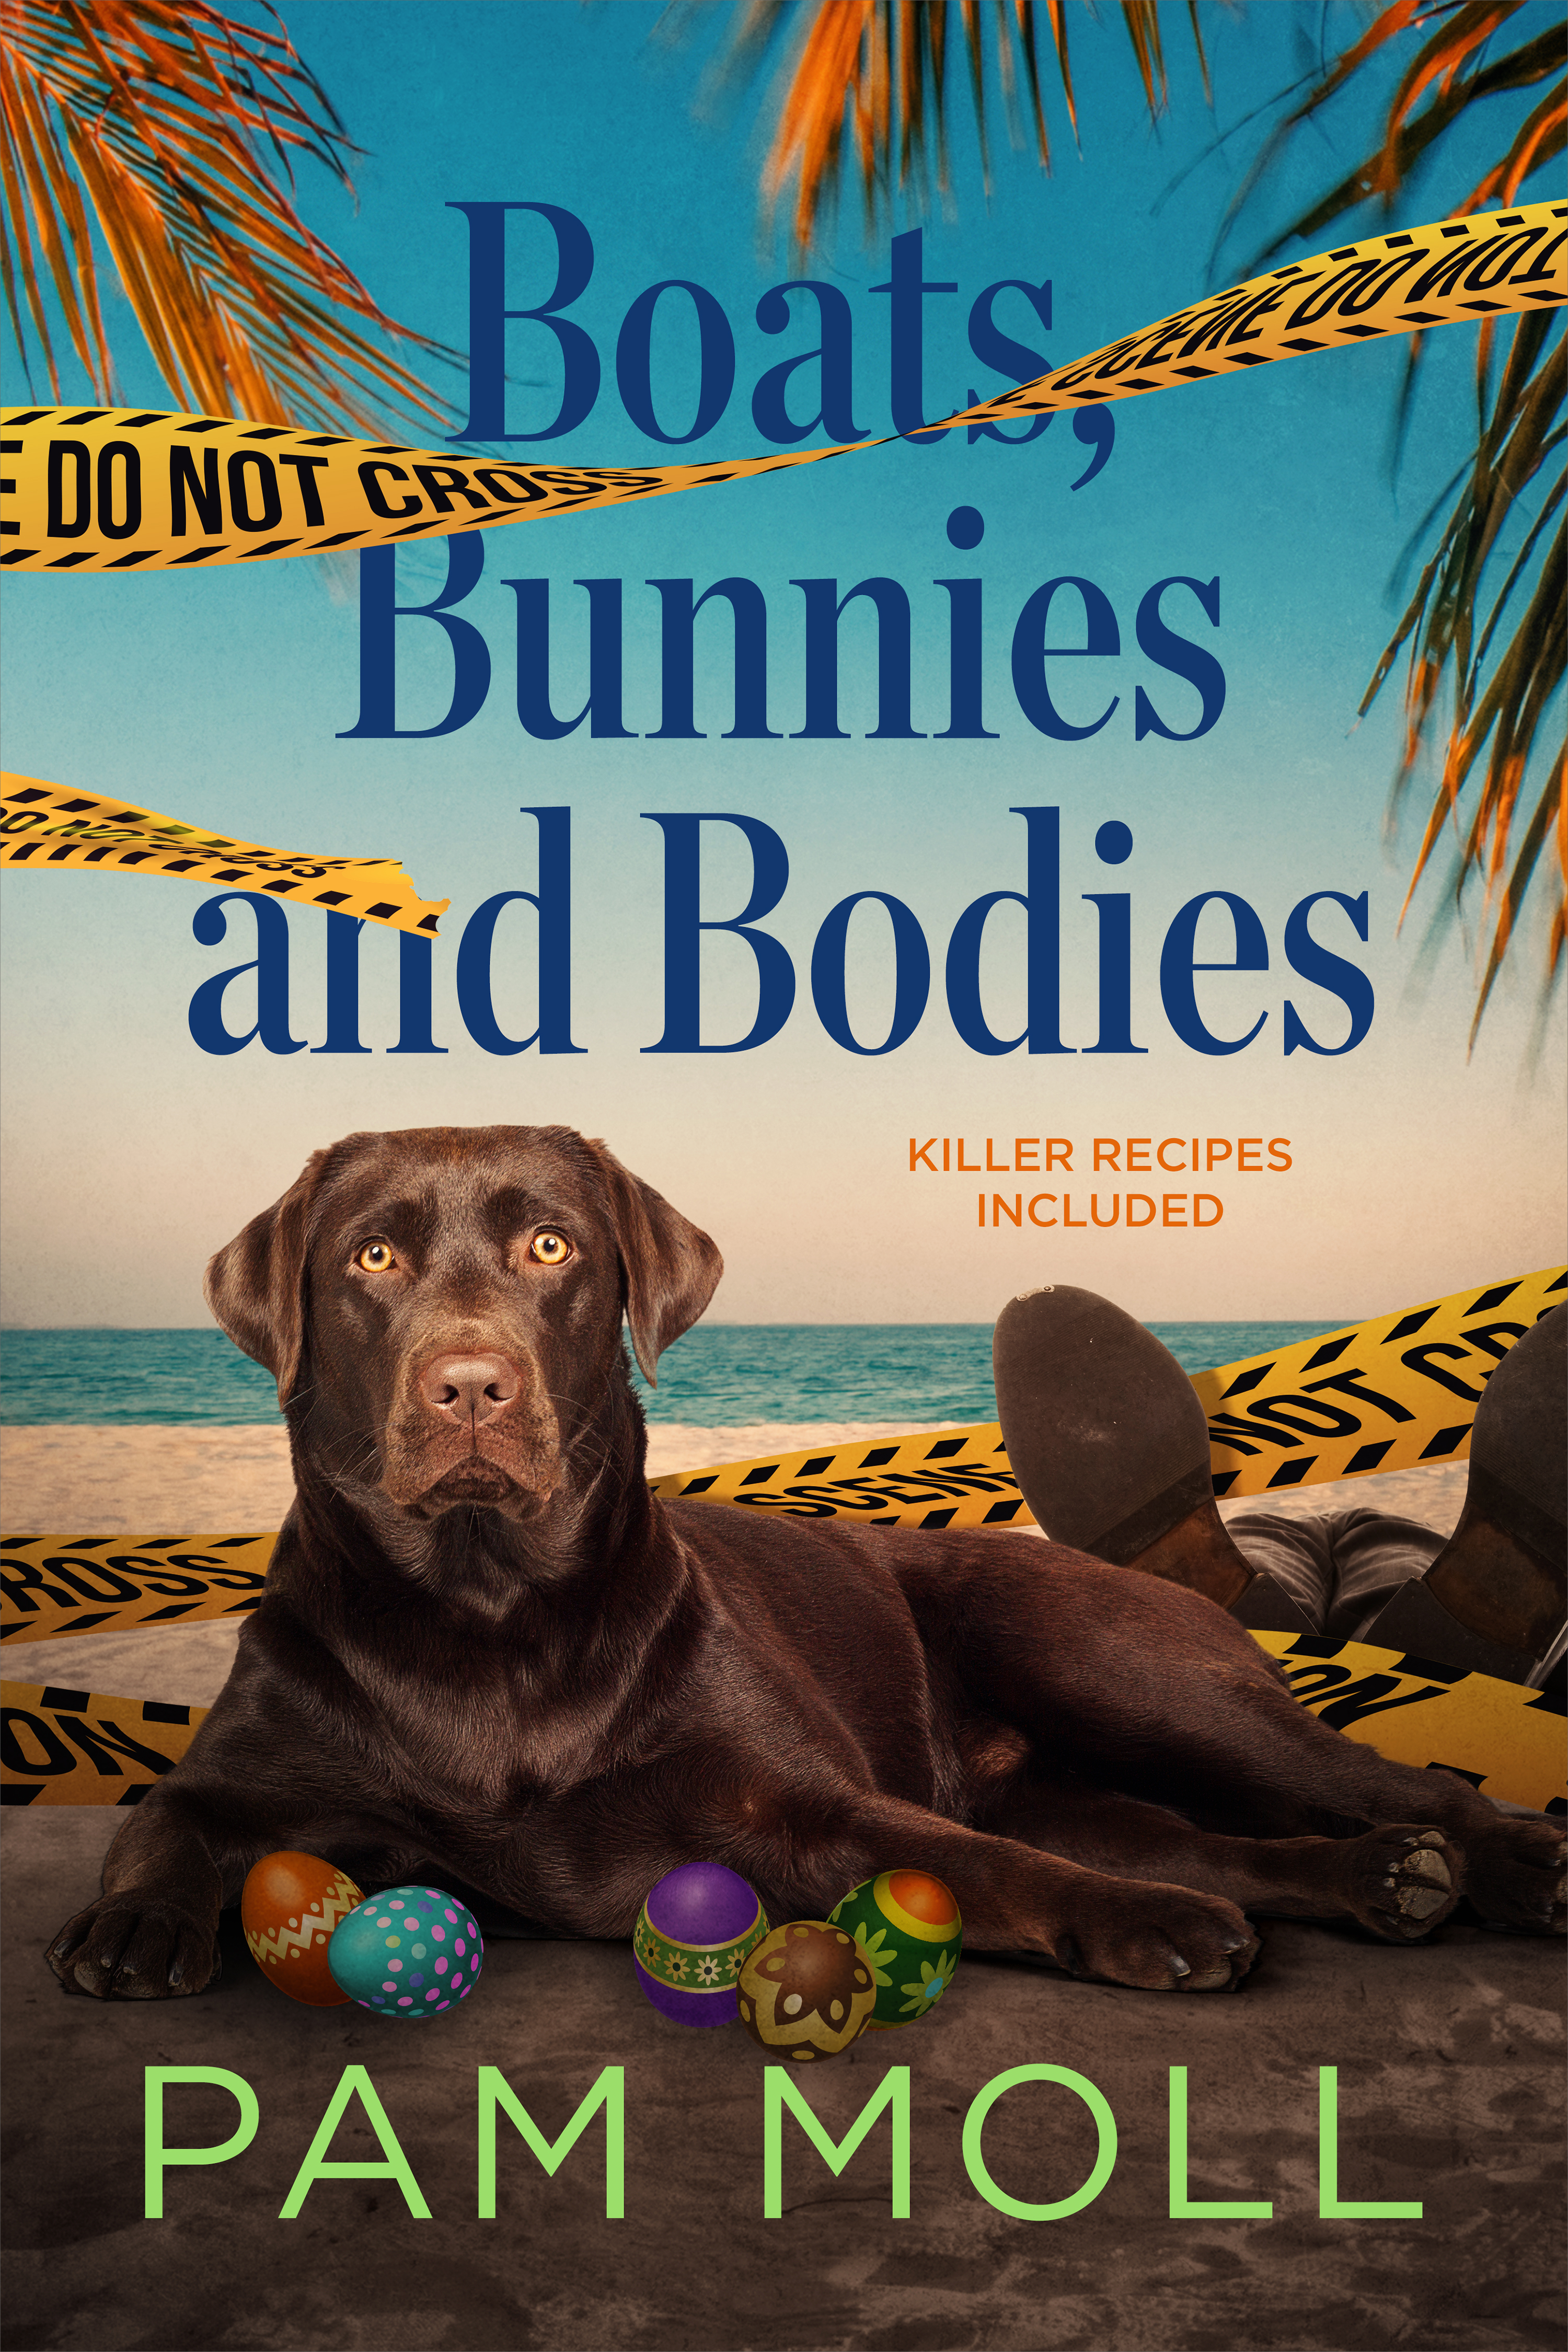 Boats, Bunnies and Bodies